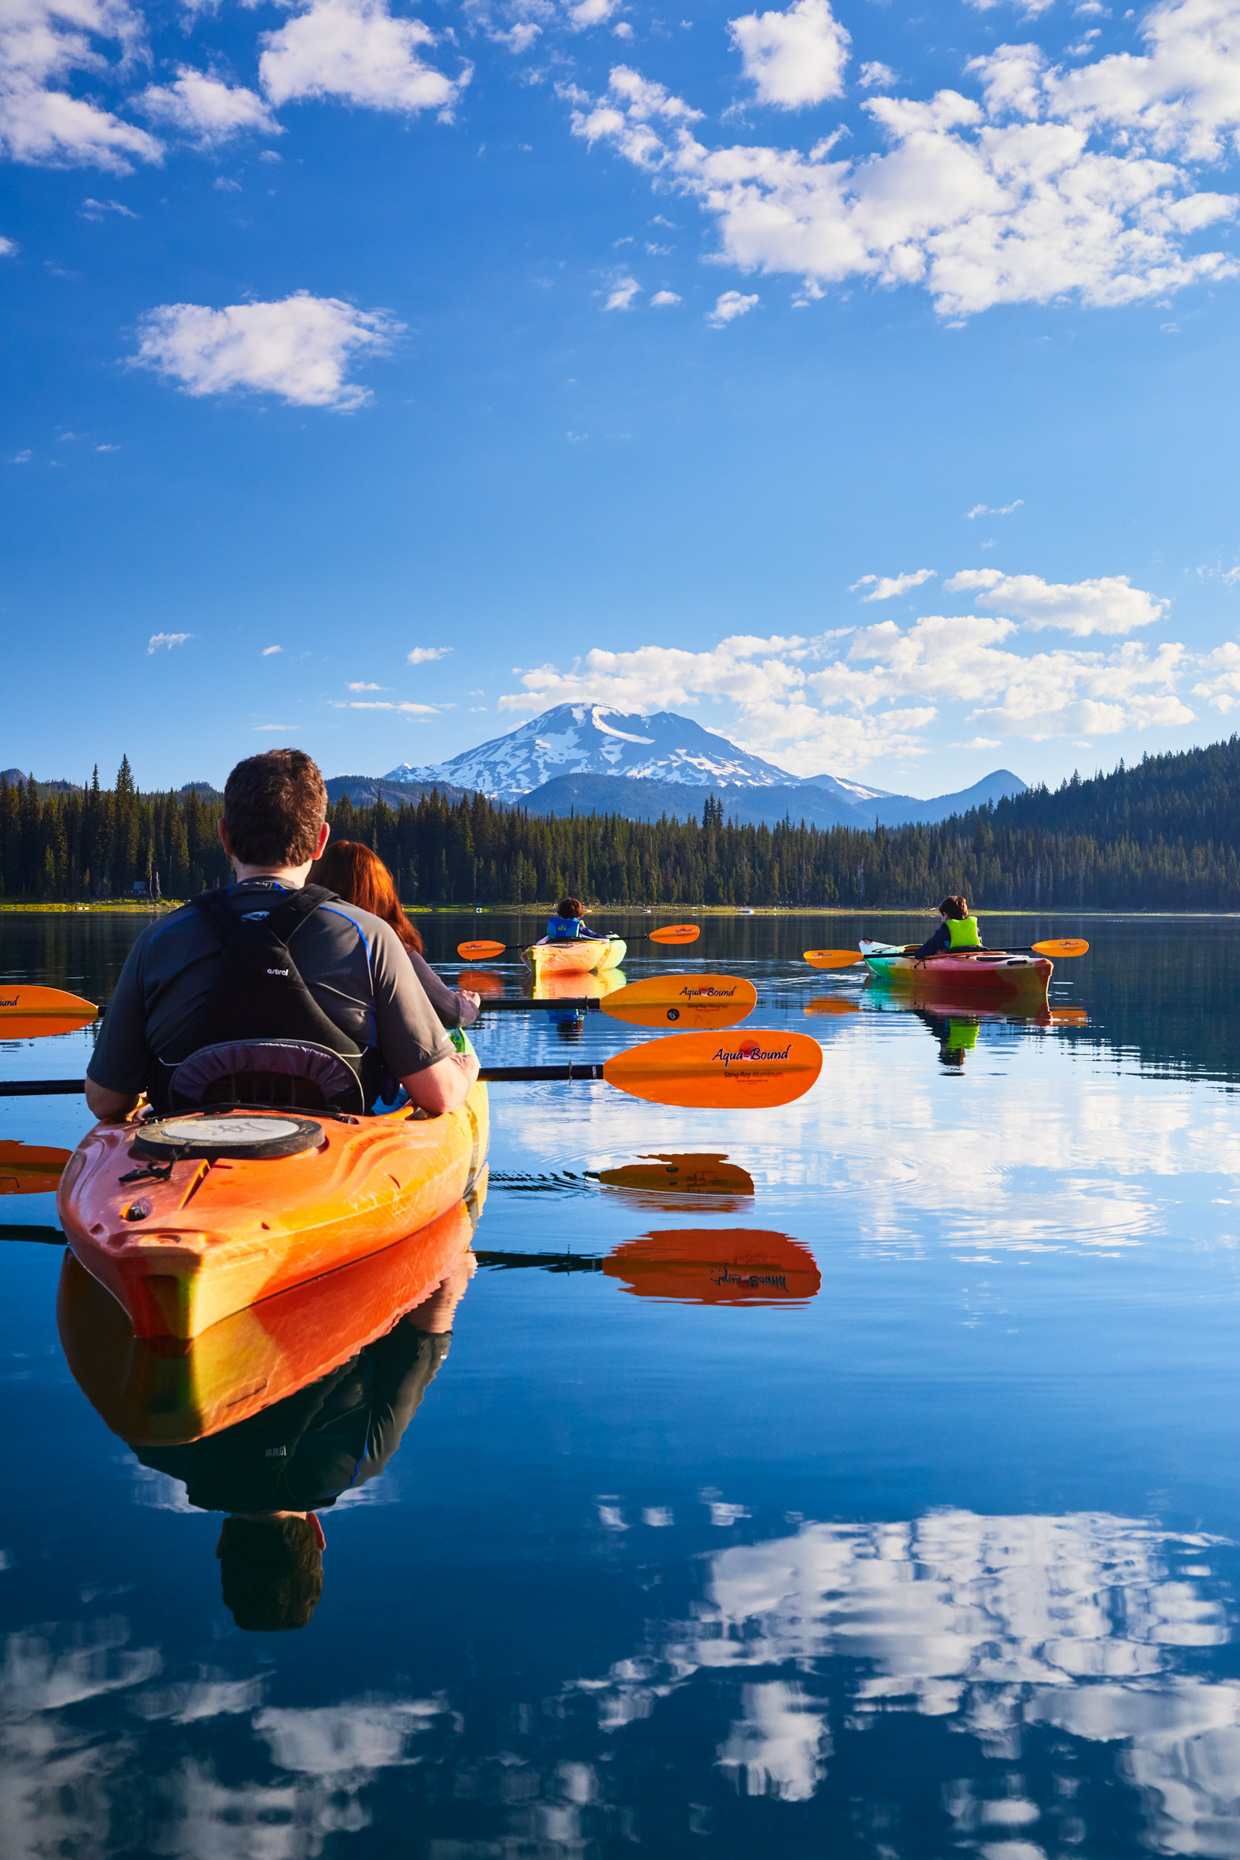 Amazing views in Central Oregon from kayaks in Elk Lake